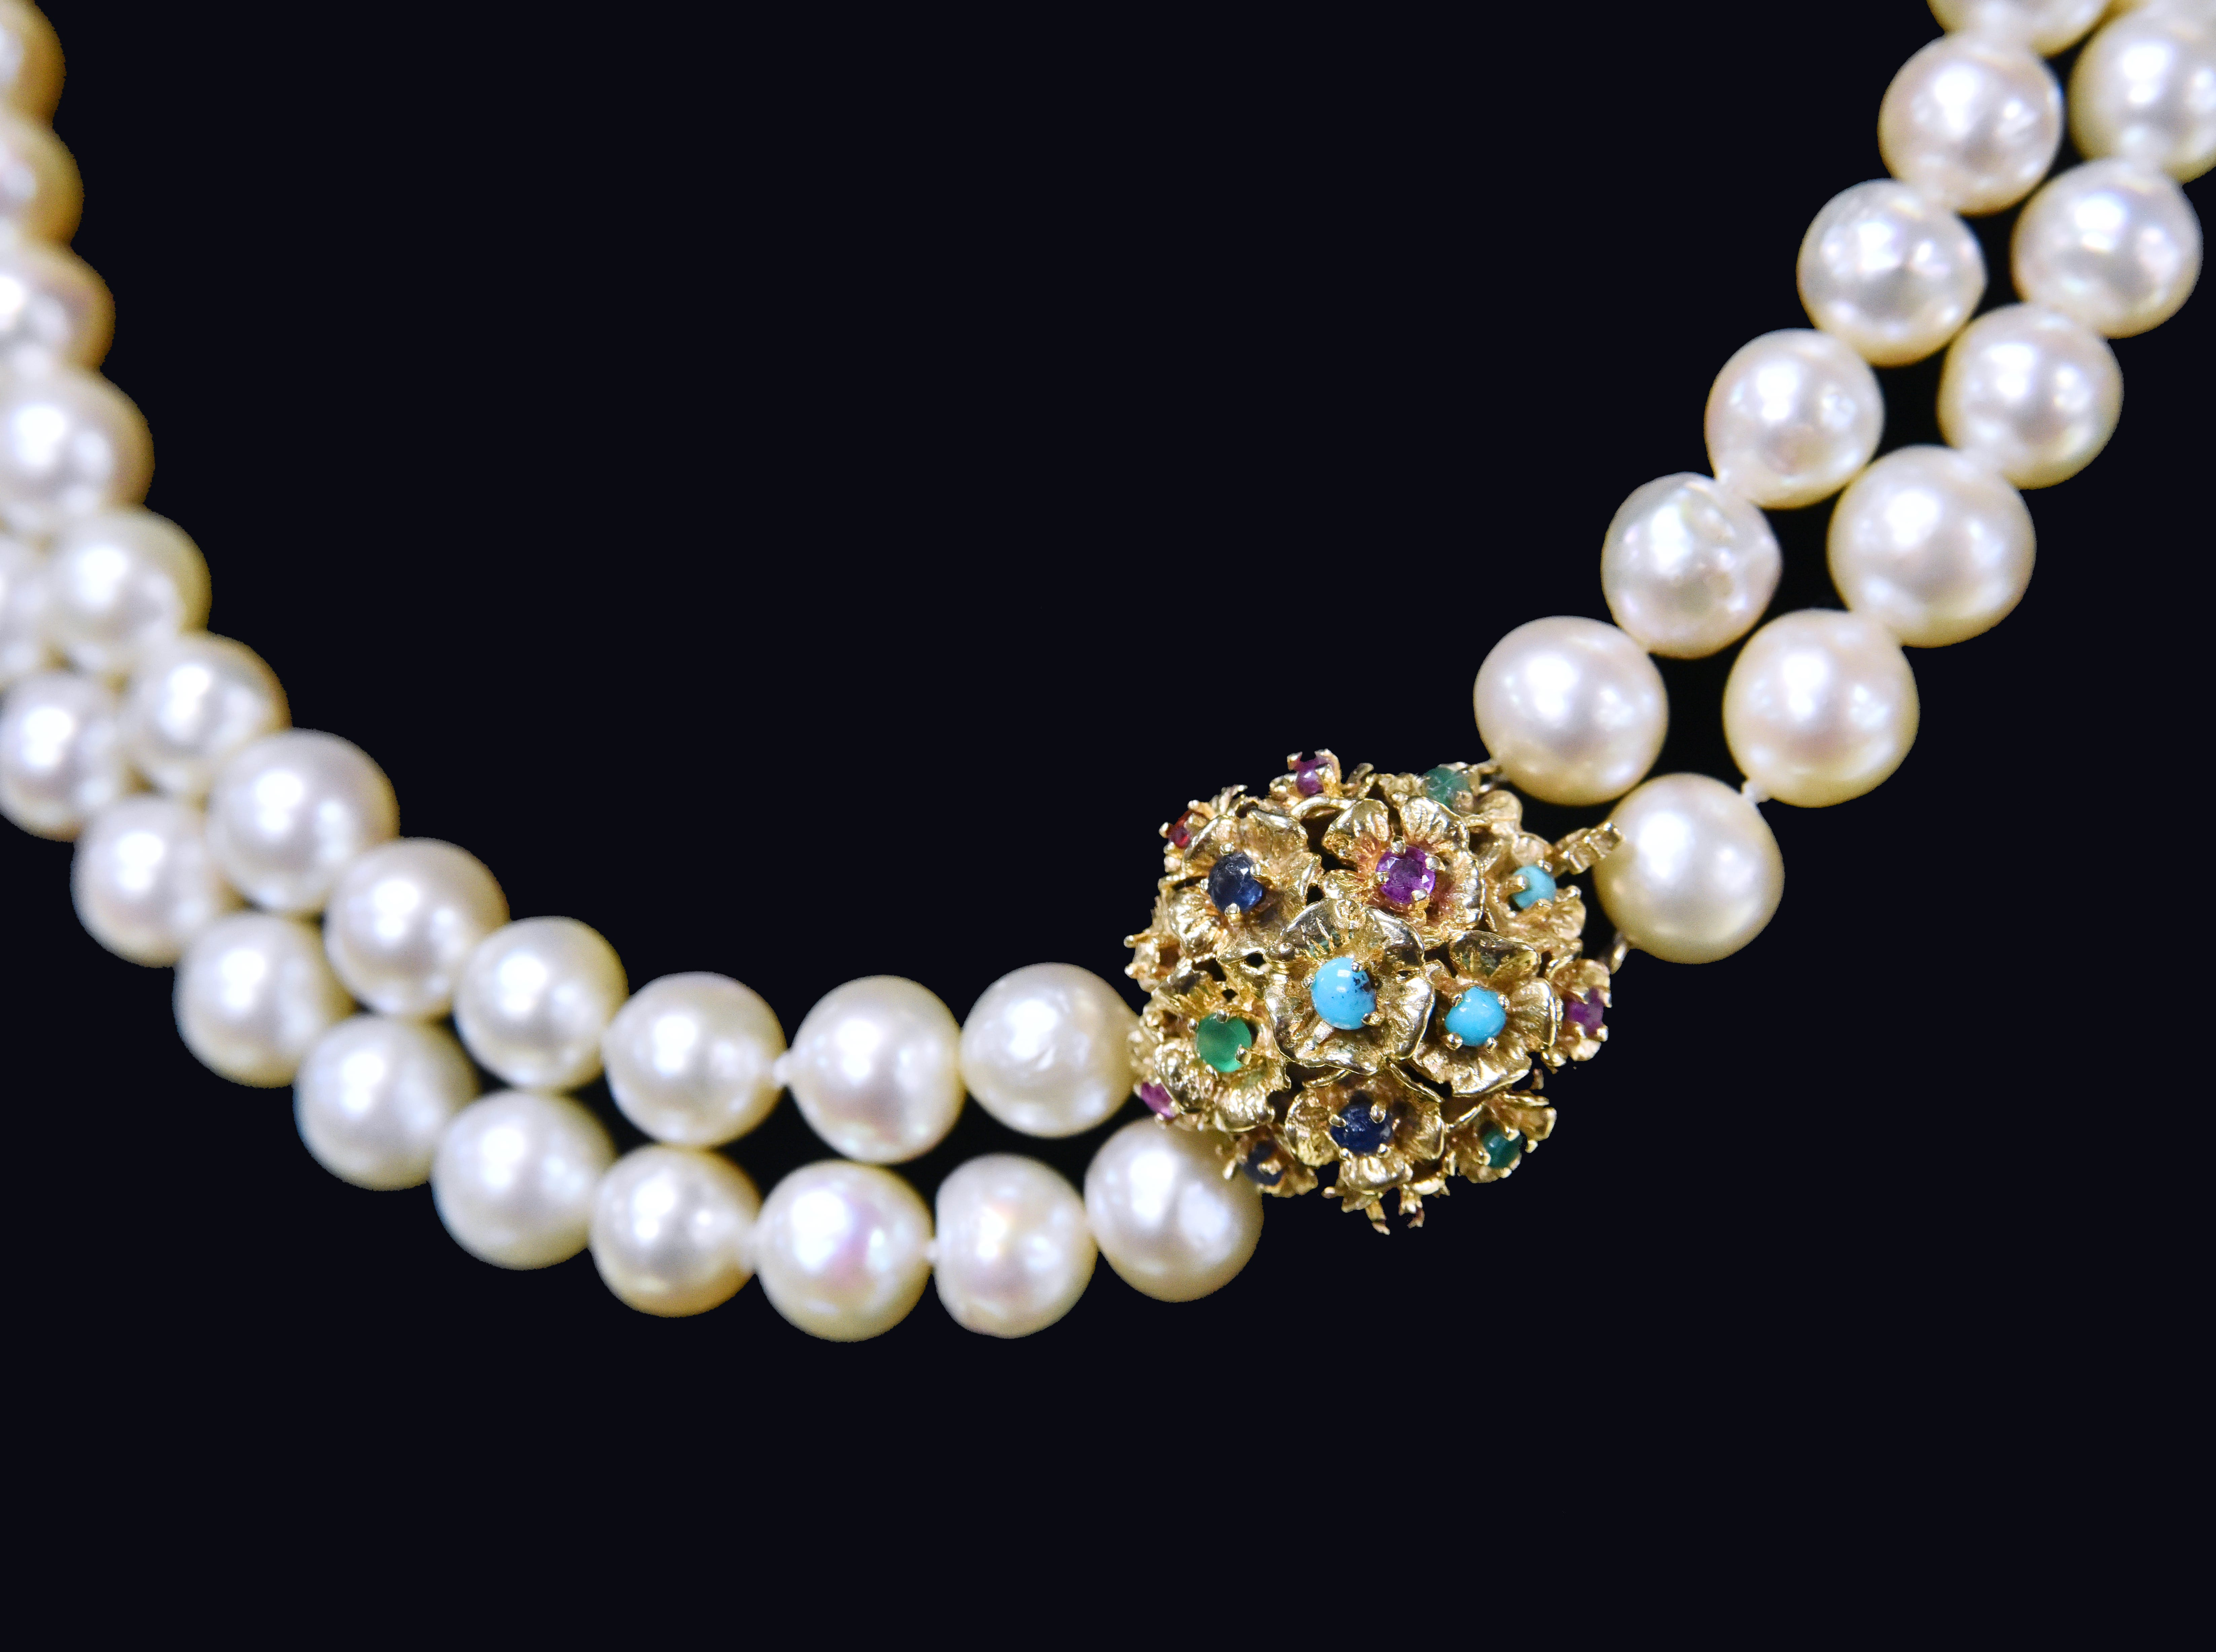 An antique cultured pearl necklace with a 14k decorative clasp with sapphire, emerald, ruby and turquoise.